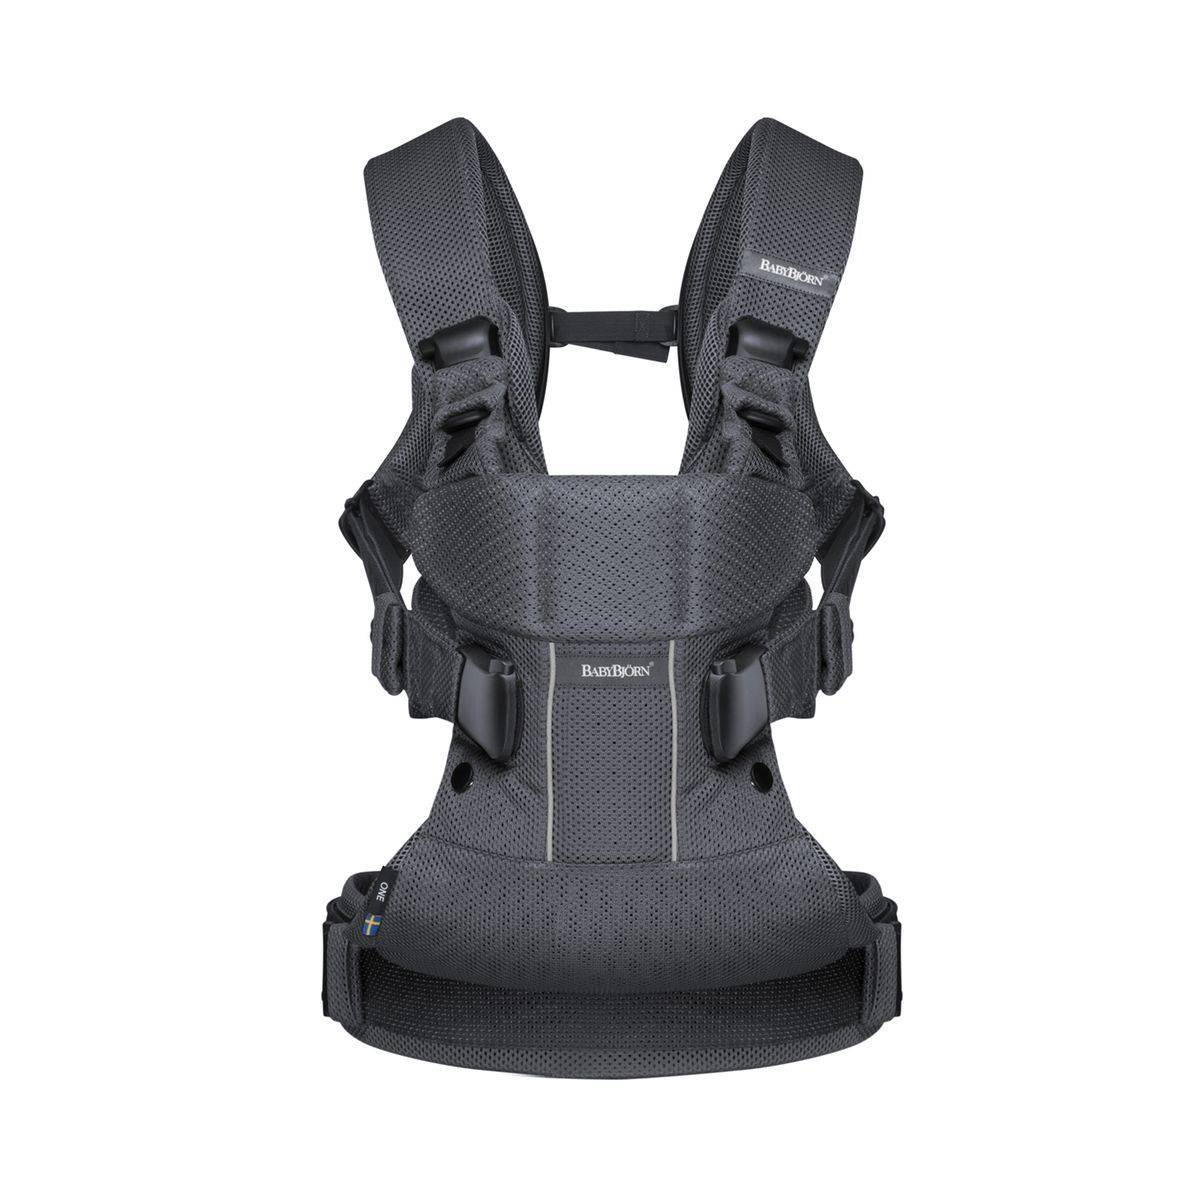 BABYBJORN Porte-bébé Carrier One Air anthracite - BABYBJORN